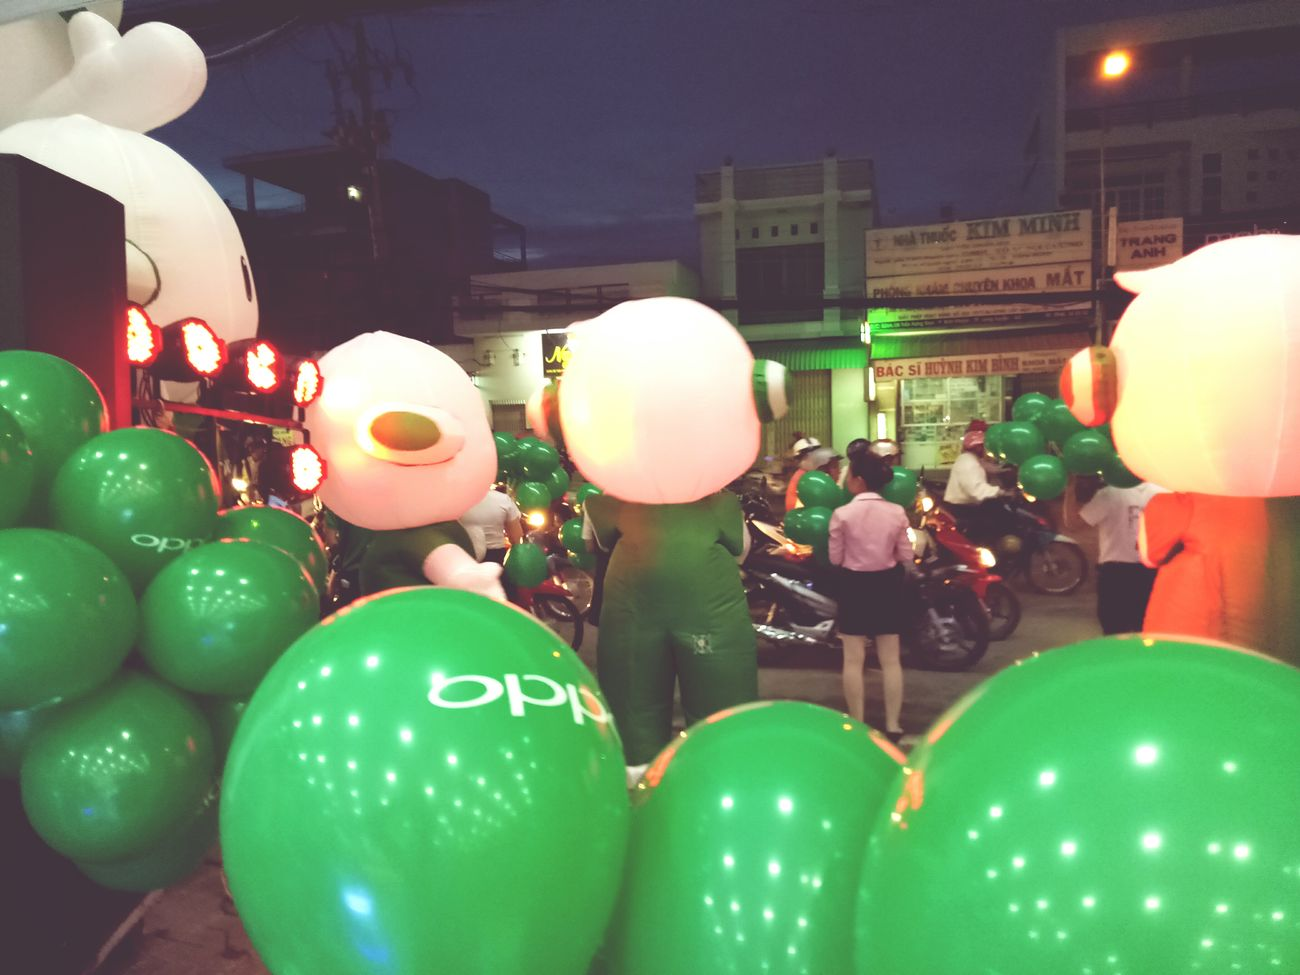 Celebration Balloon Party - Social Event Night Event EventPhotography EyeEm Team EyeEmBestEdits Nightphotography Night City